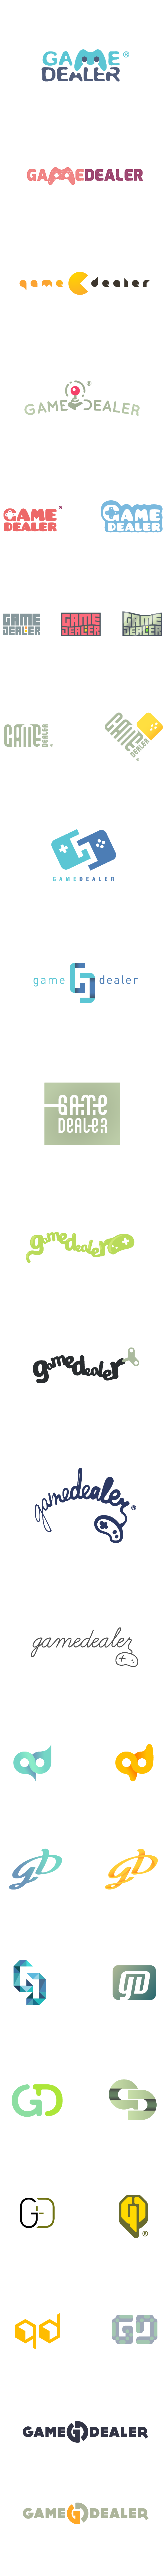 Gamedealer logo versions.